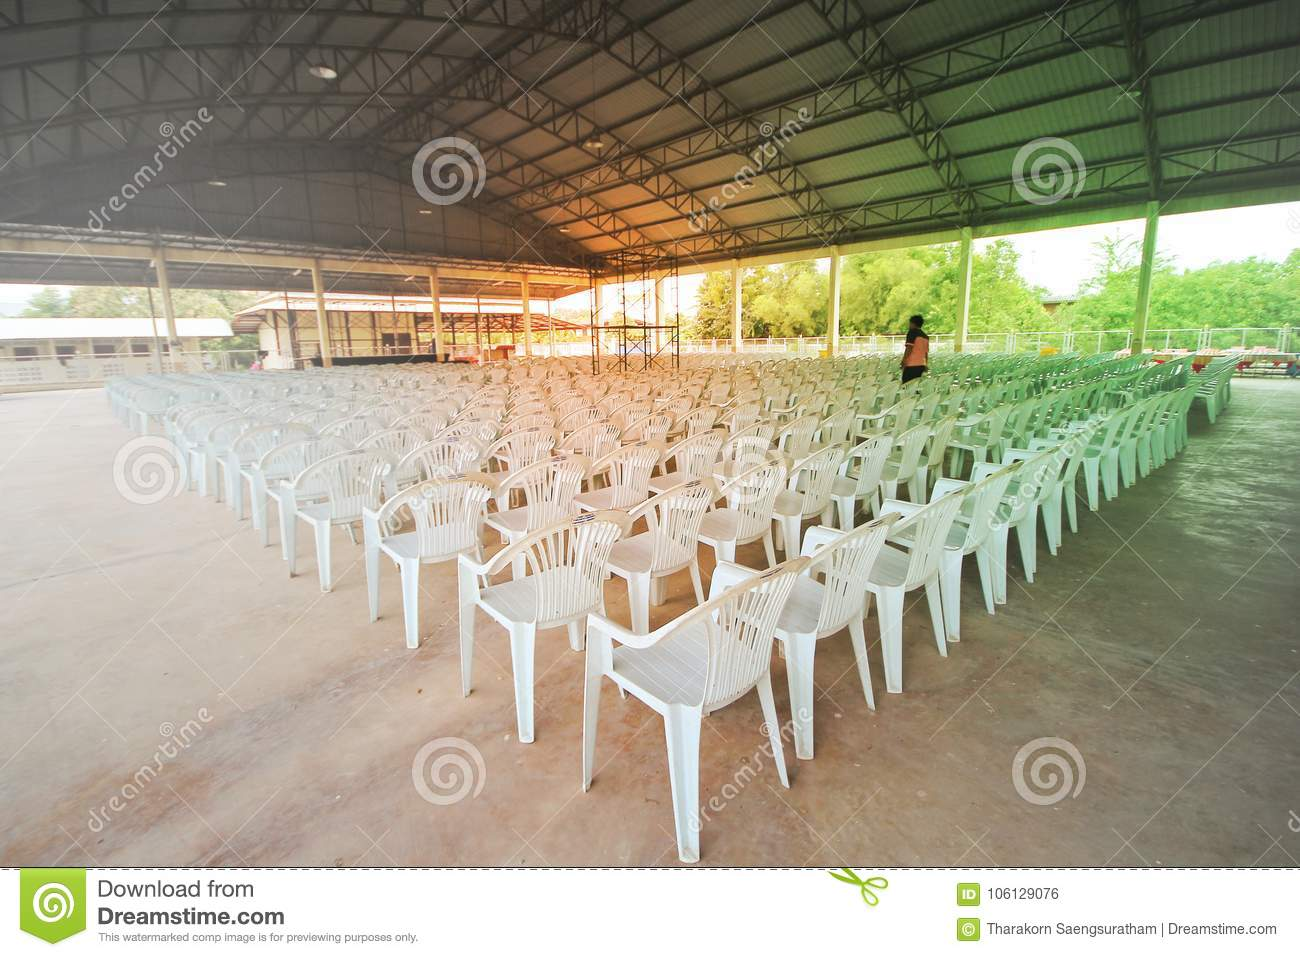 Prepare A Community Hall With The Placement Of The Chairs Style ...